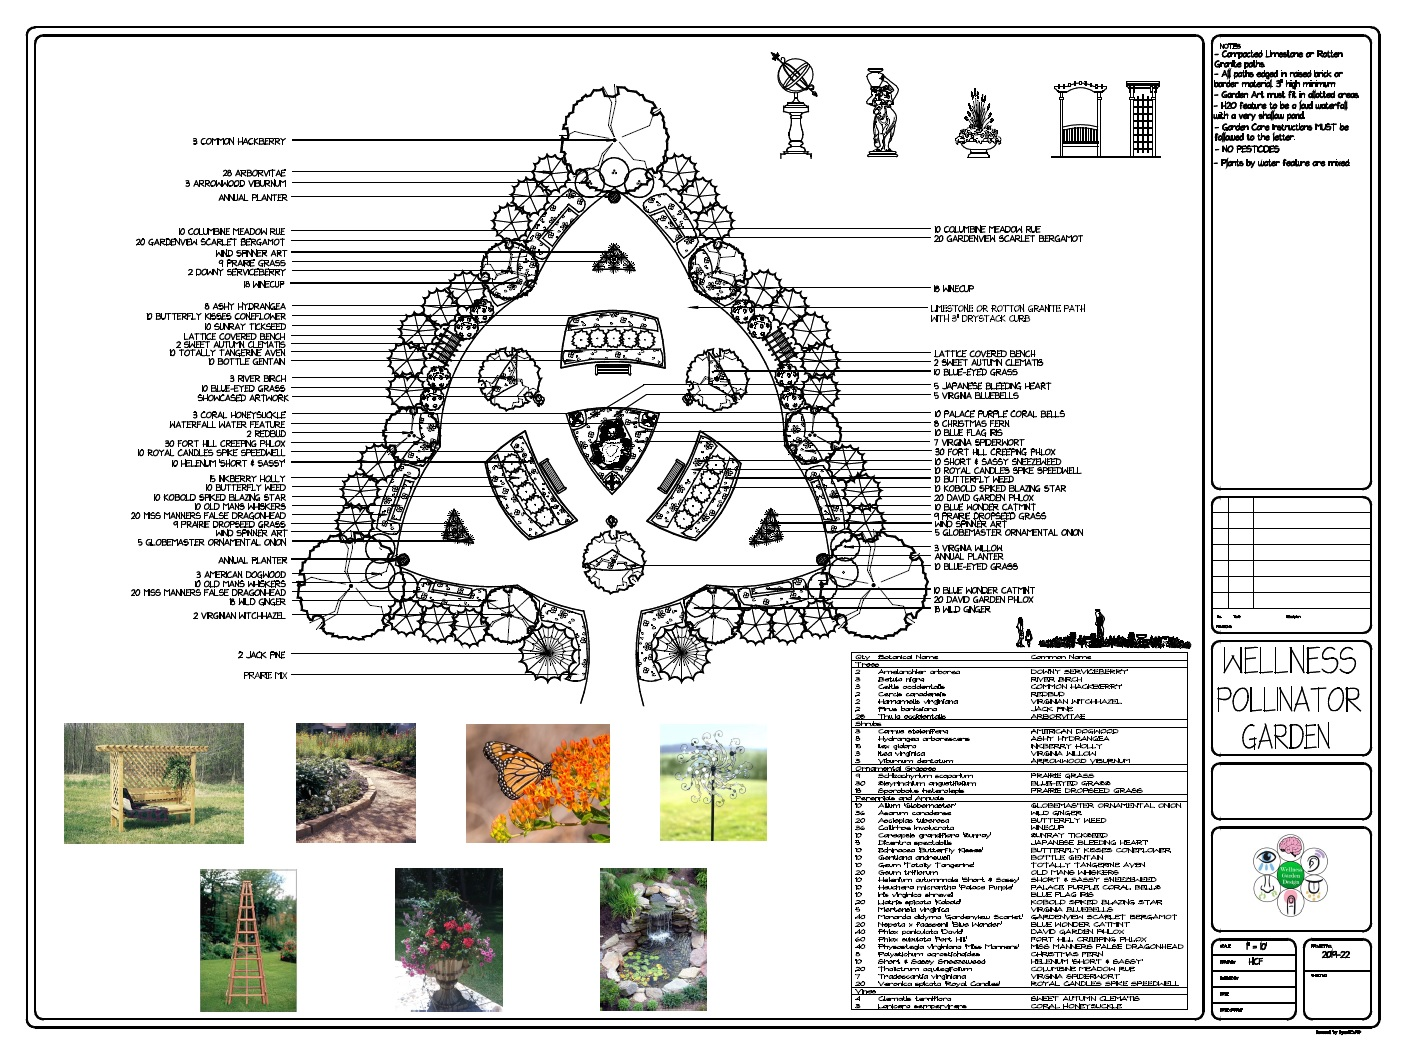 An architectural drawing of a wellness garden